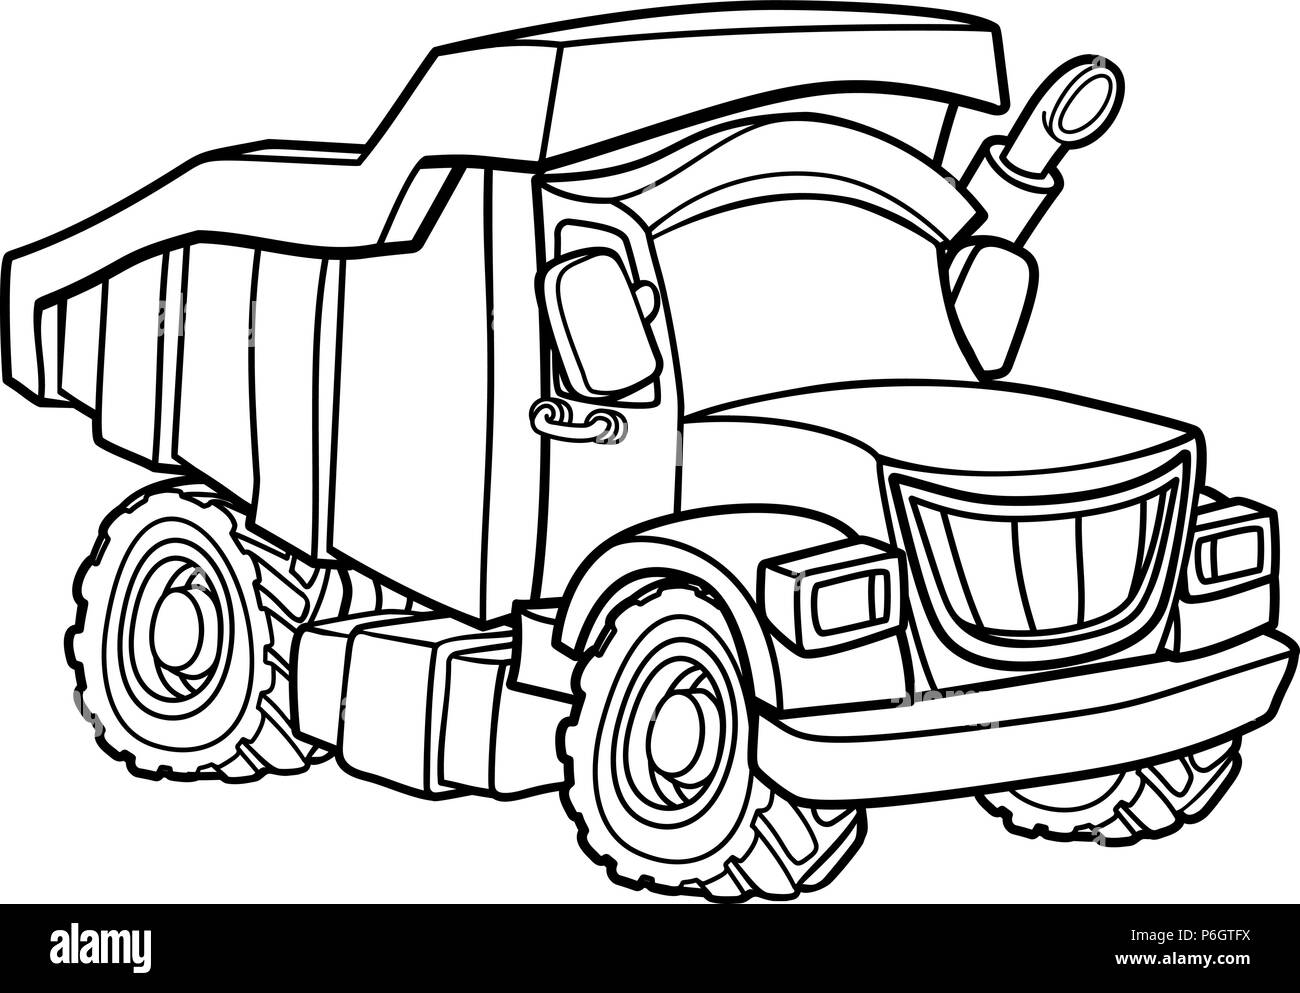 tipper lorry black and white stock photos images alamy 1955 Ford Popular dump truck stock image